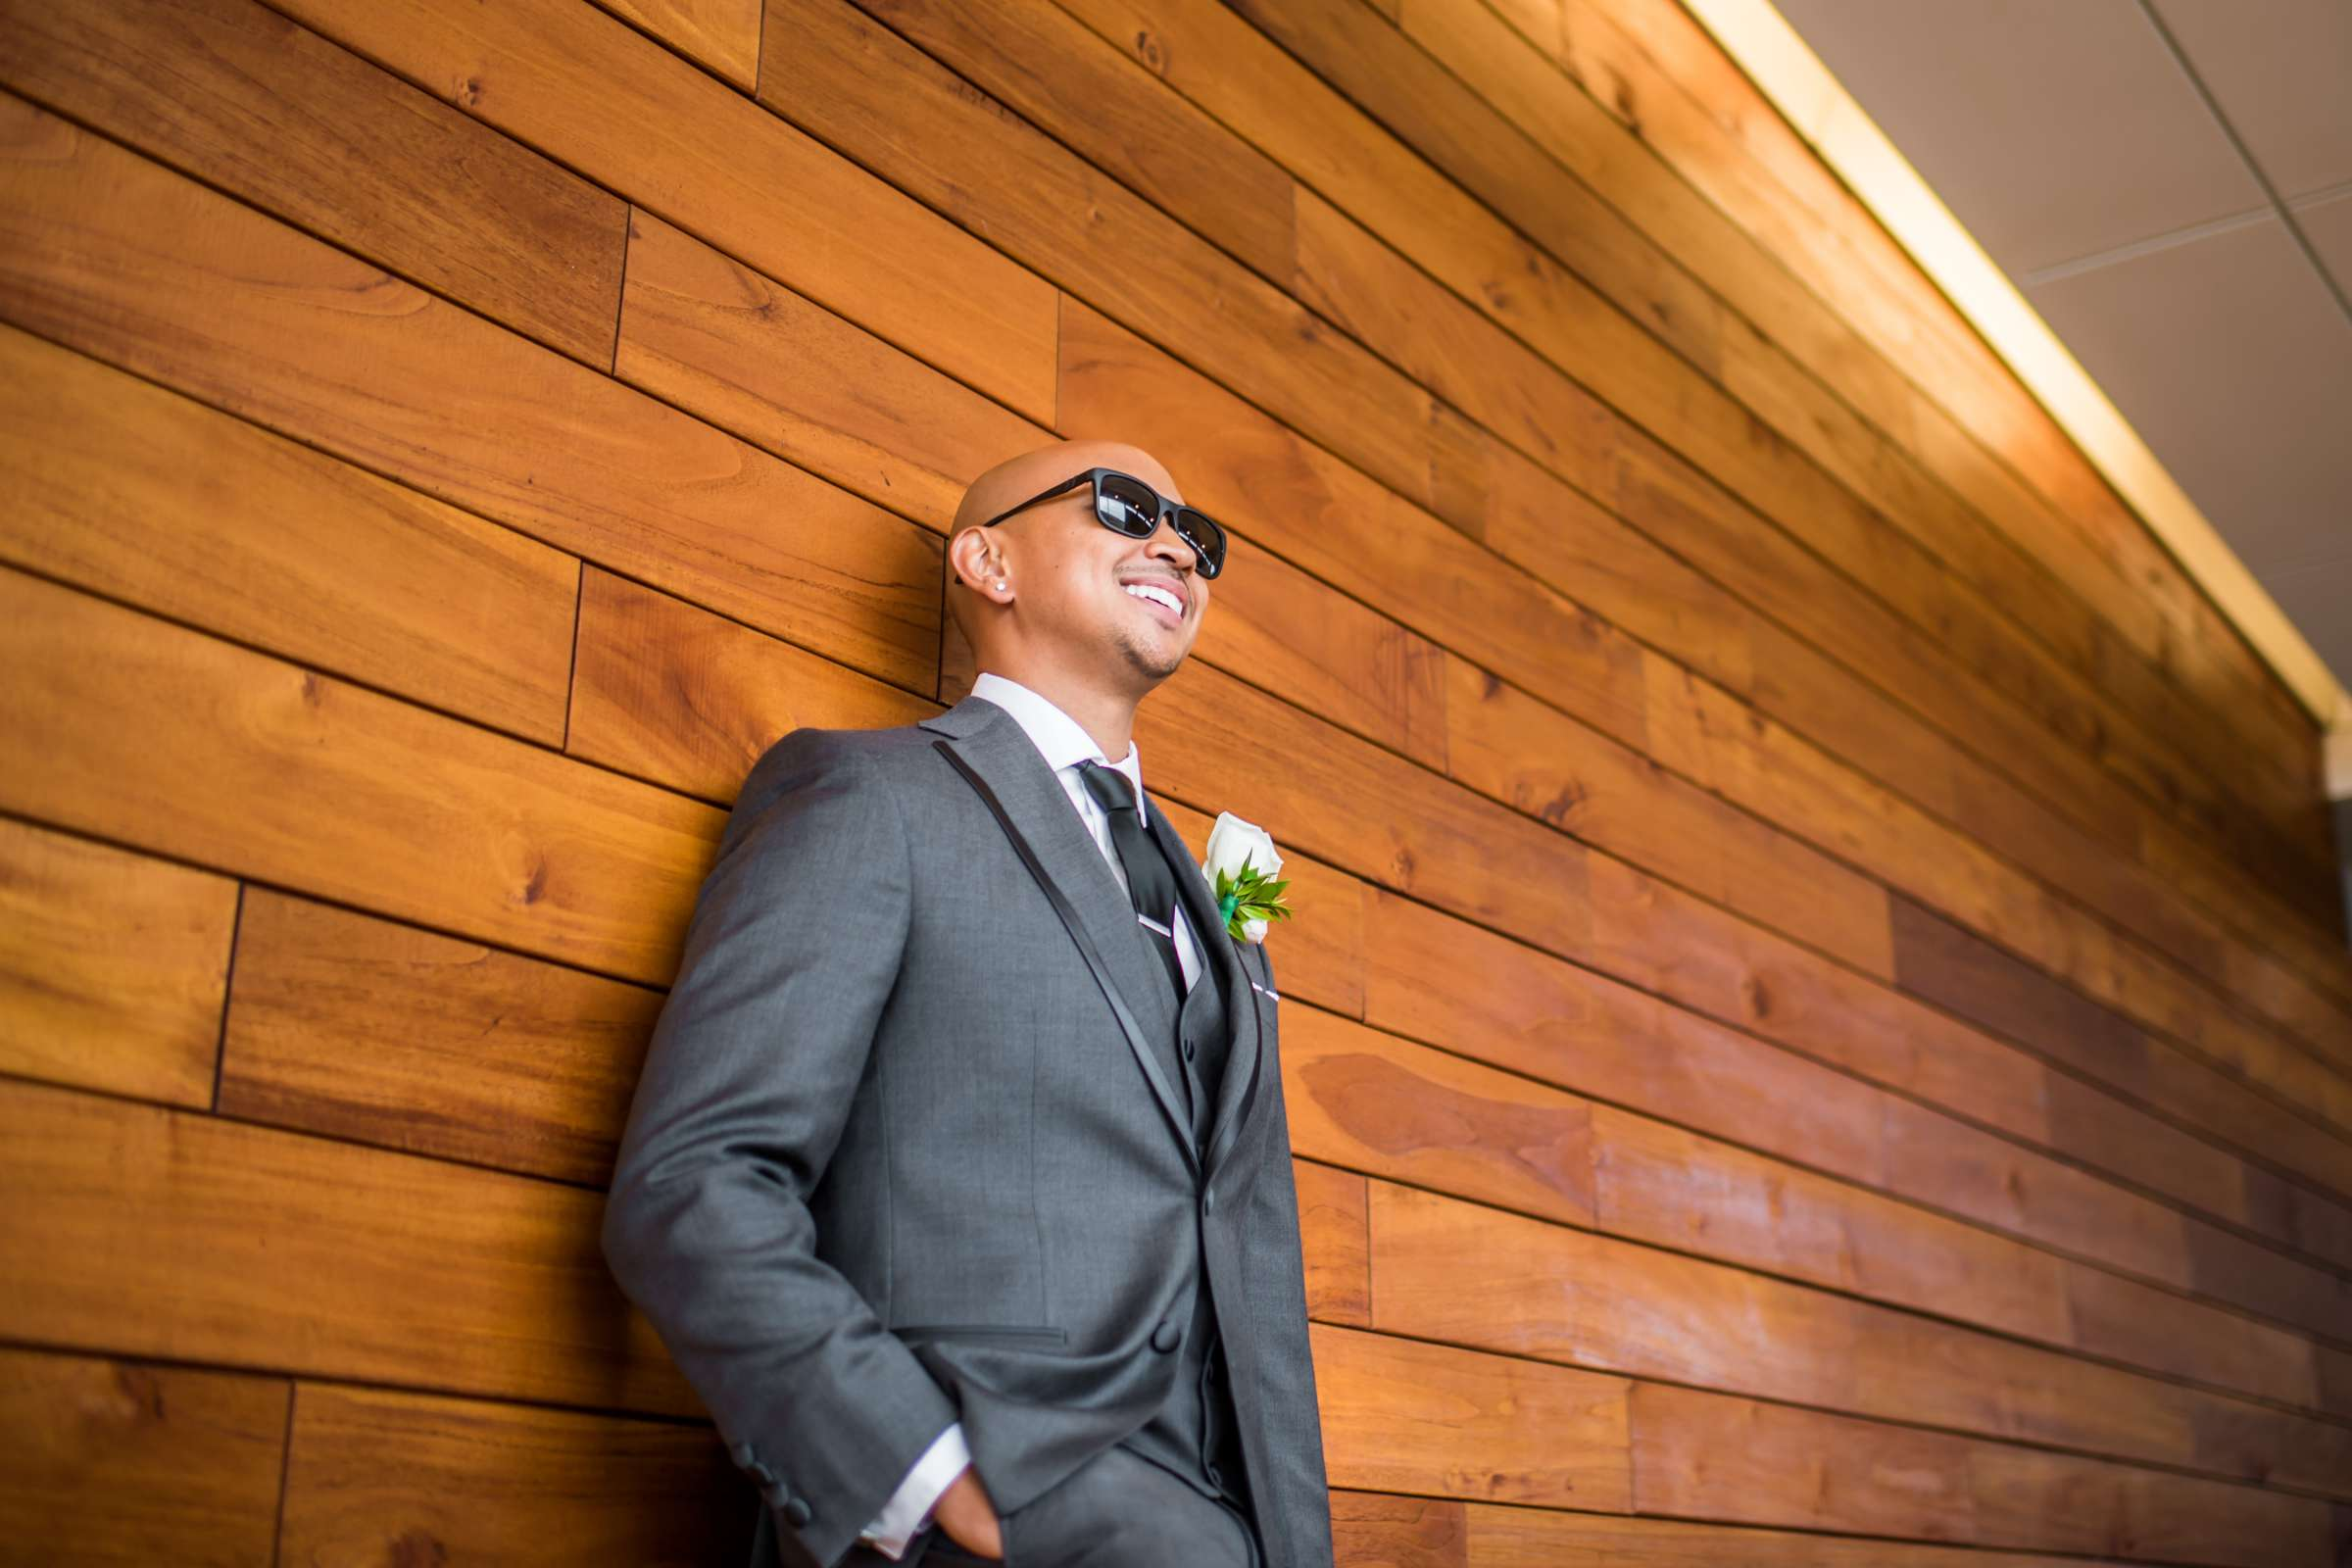 Scripps Seaside Forum Wedding coordinated by Lavish Weddings, Cindy and Justin Wedding Photo #381771 by True Photography